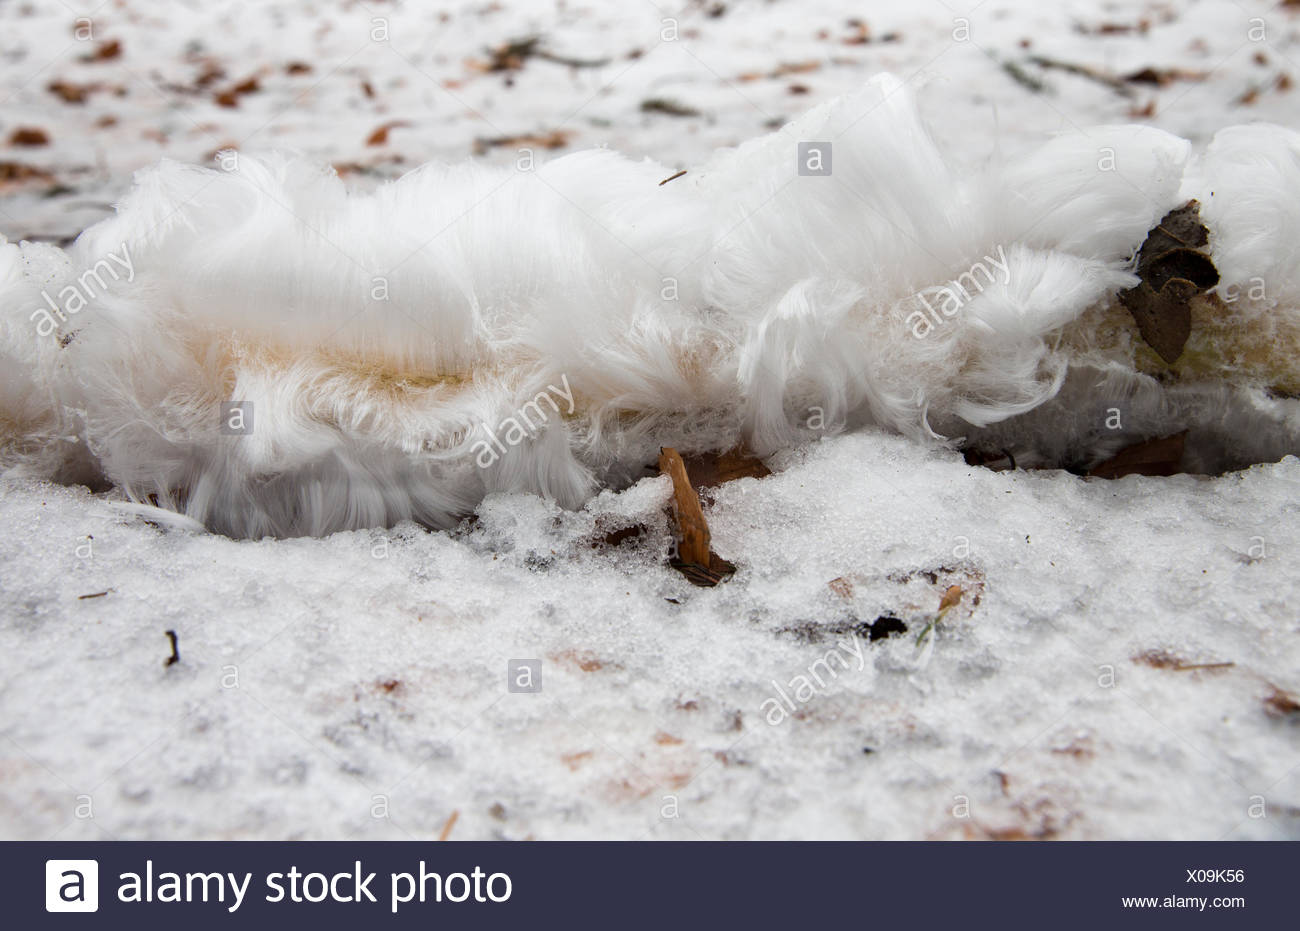 a branch with hair ice lies on the snow in the beech forest, a very rare phenomenon - Stock Image